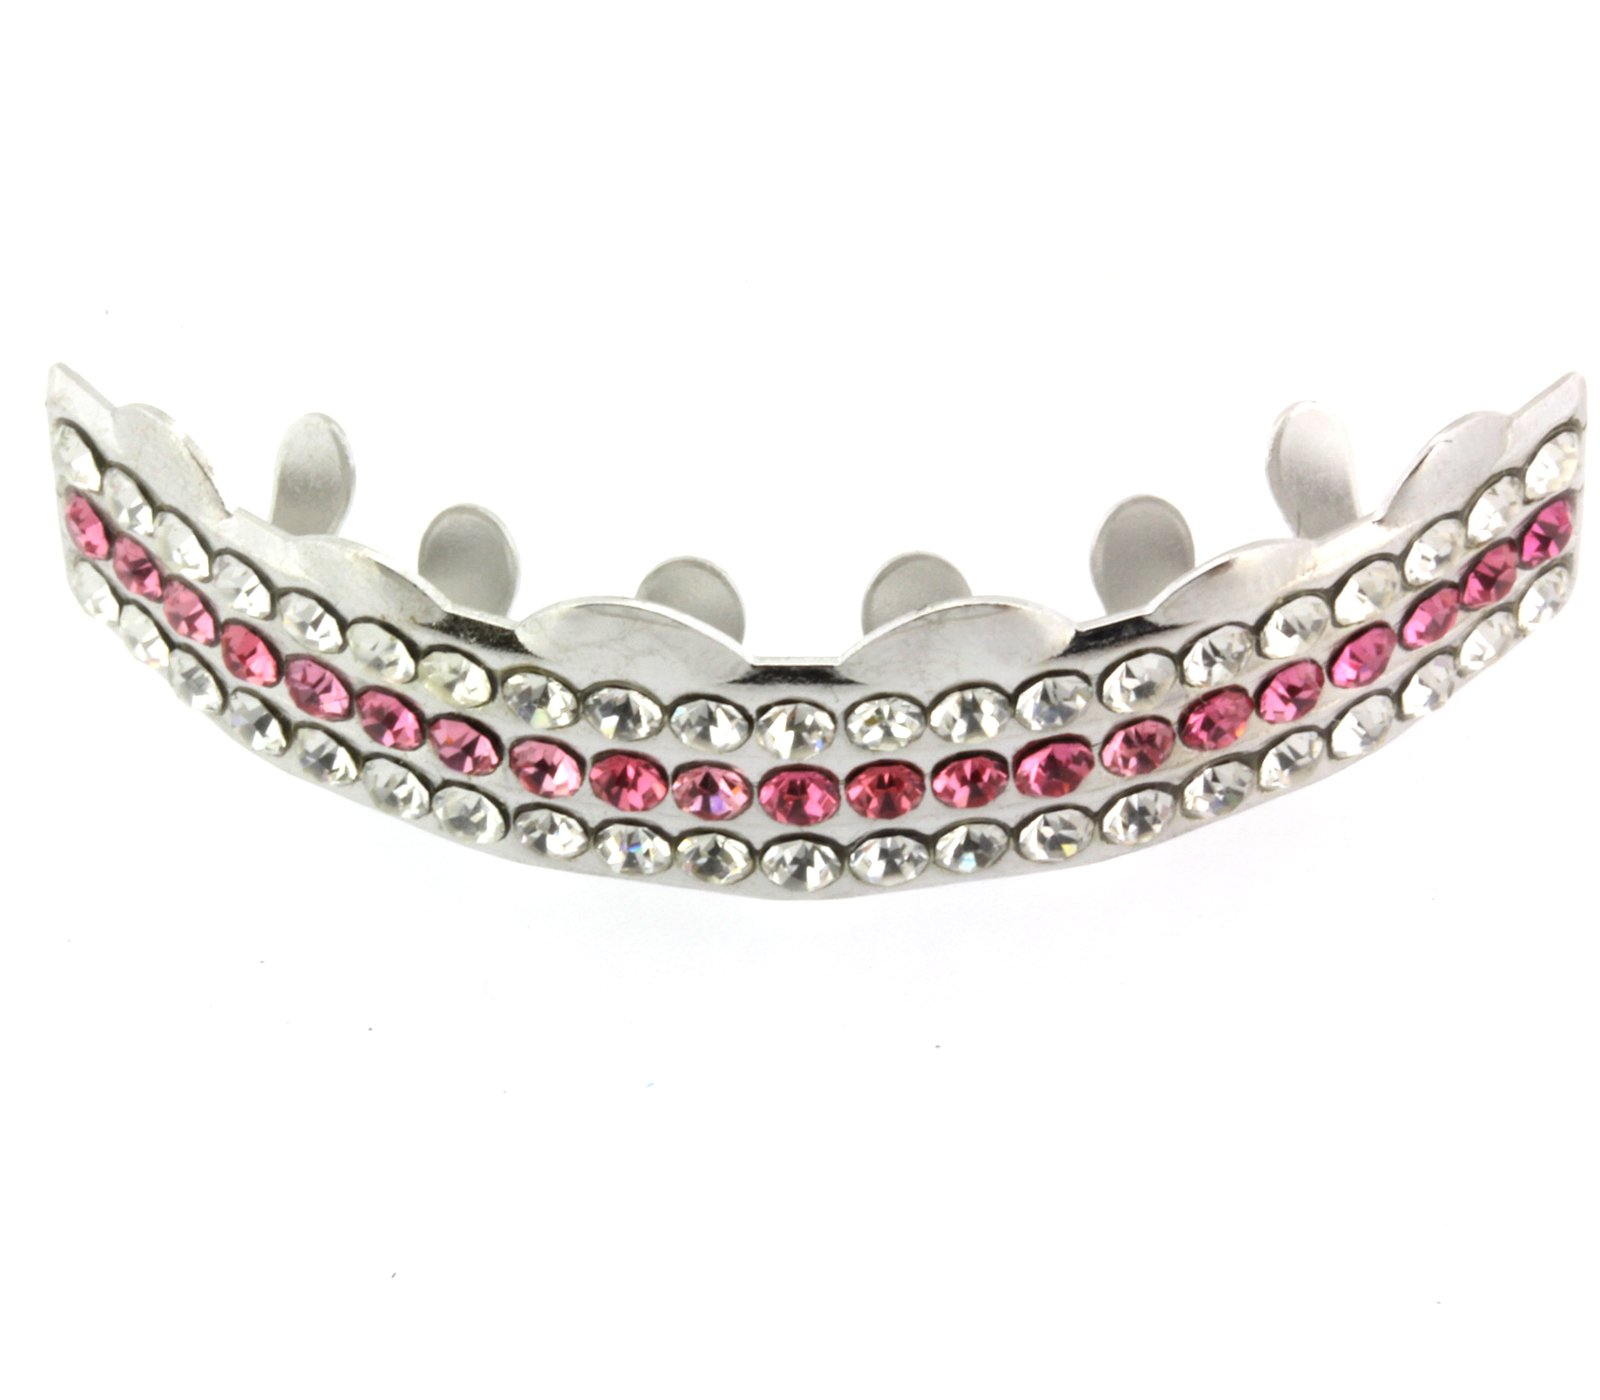 Hip Hop Top Silver Tone 3 Bling Rows Removeable Mouth Grillz Set Pink Lollipop